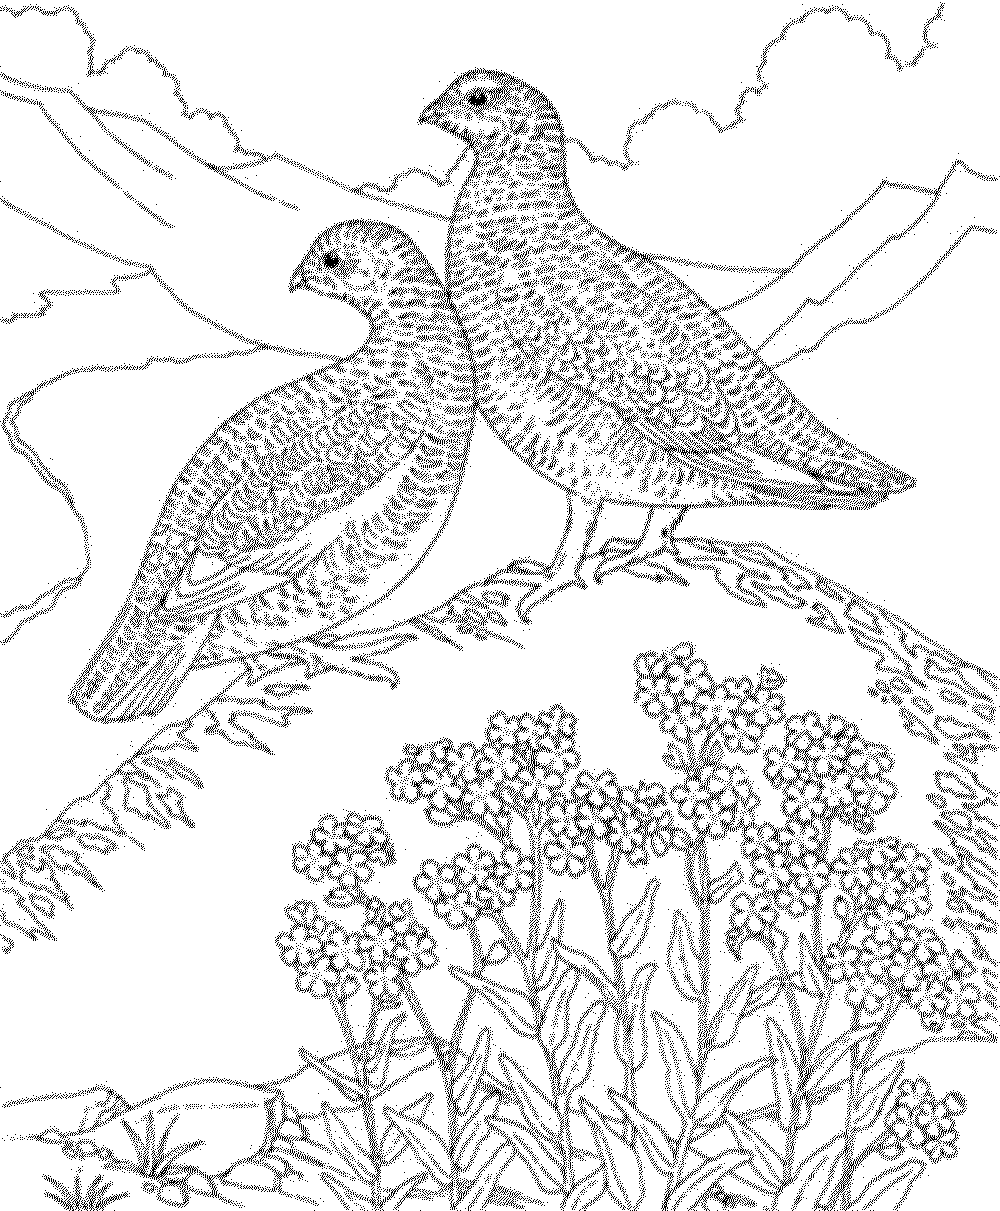 bird coloring pages for adults hard bird coloring pages for adults bestappsforkidscom adults for bird coloring pages